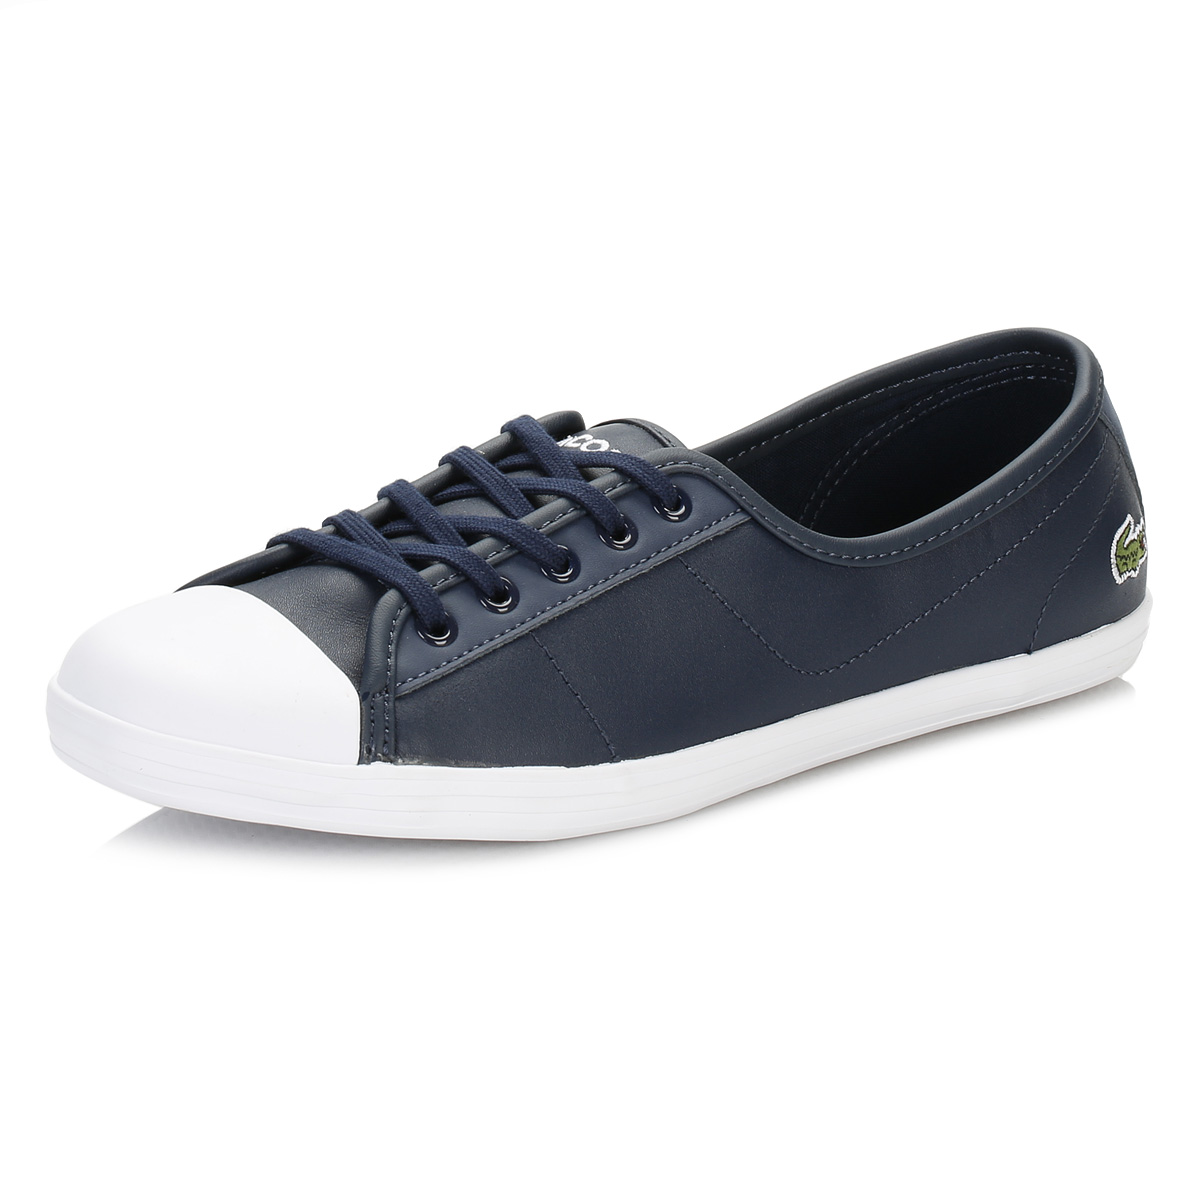 61081932698ed Details about Lacoste Womens Navy Blue Ziane BL 1 SPW Trainers Leather  Casual Shoes Flats